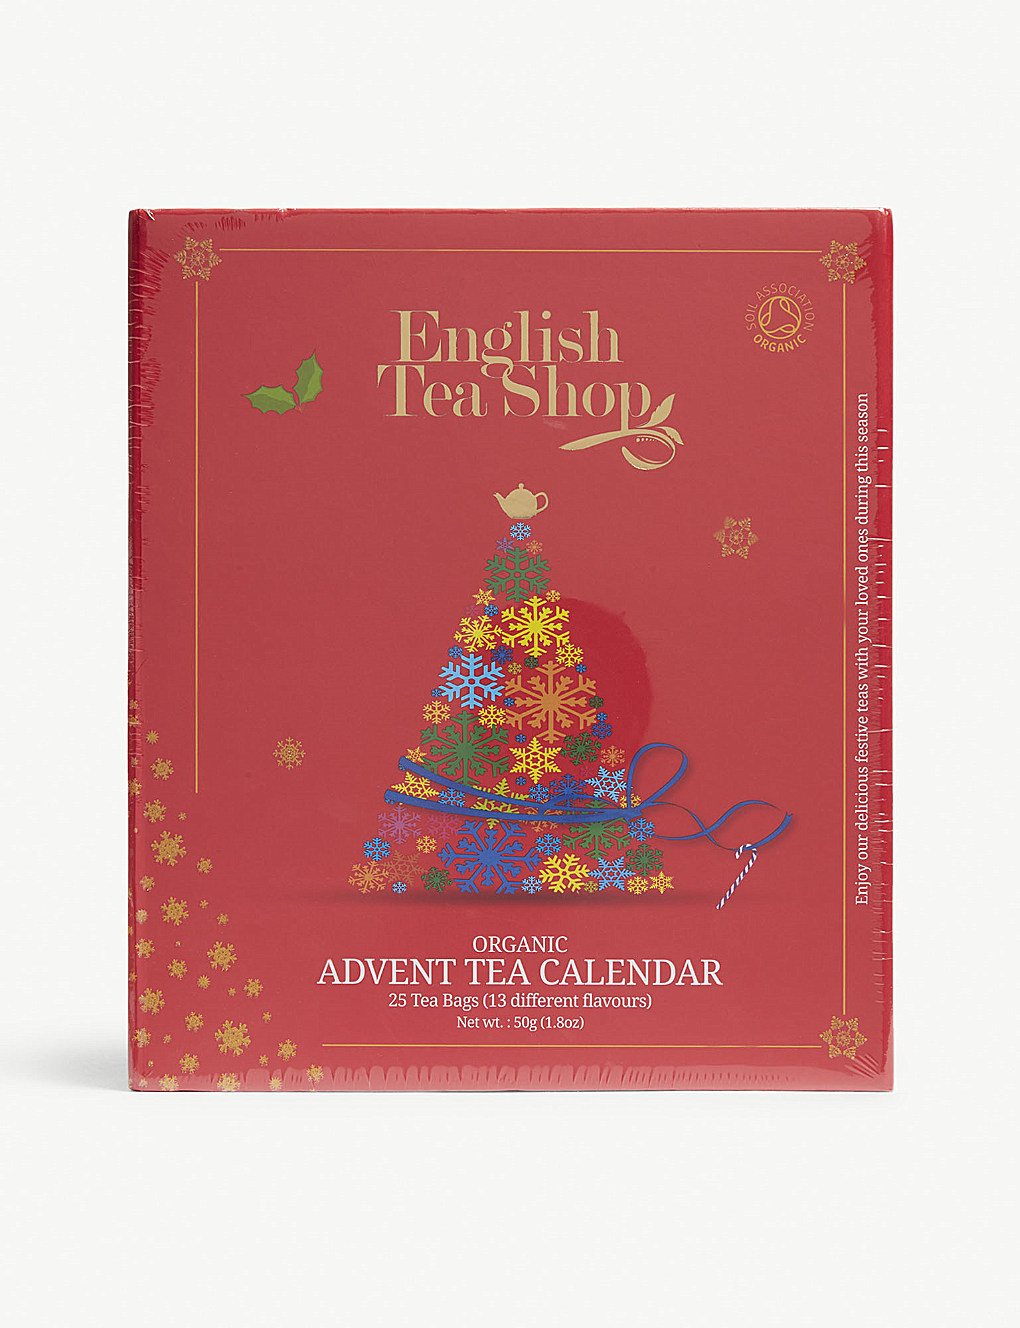 Countdown to Christmas with a tea themed advent calendar